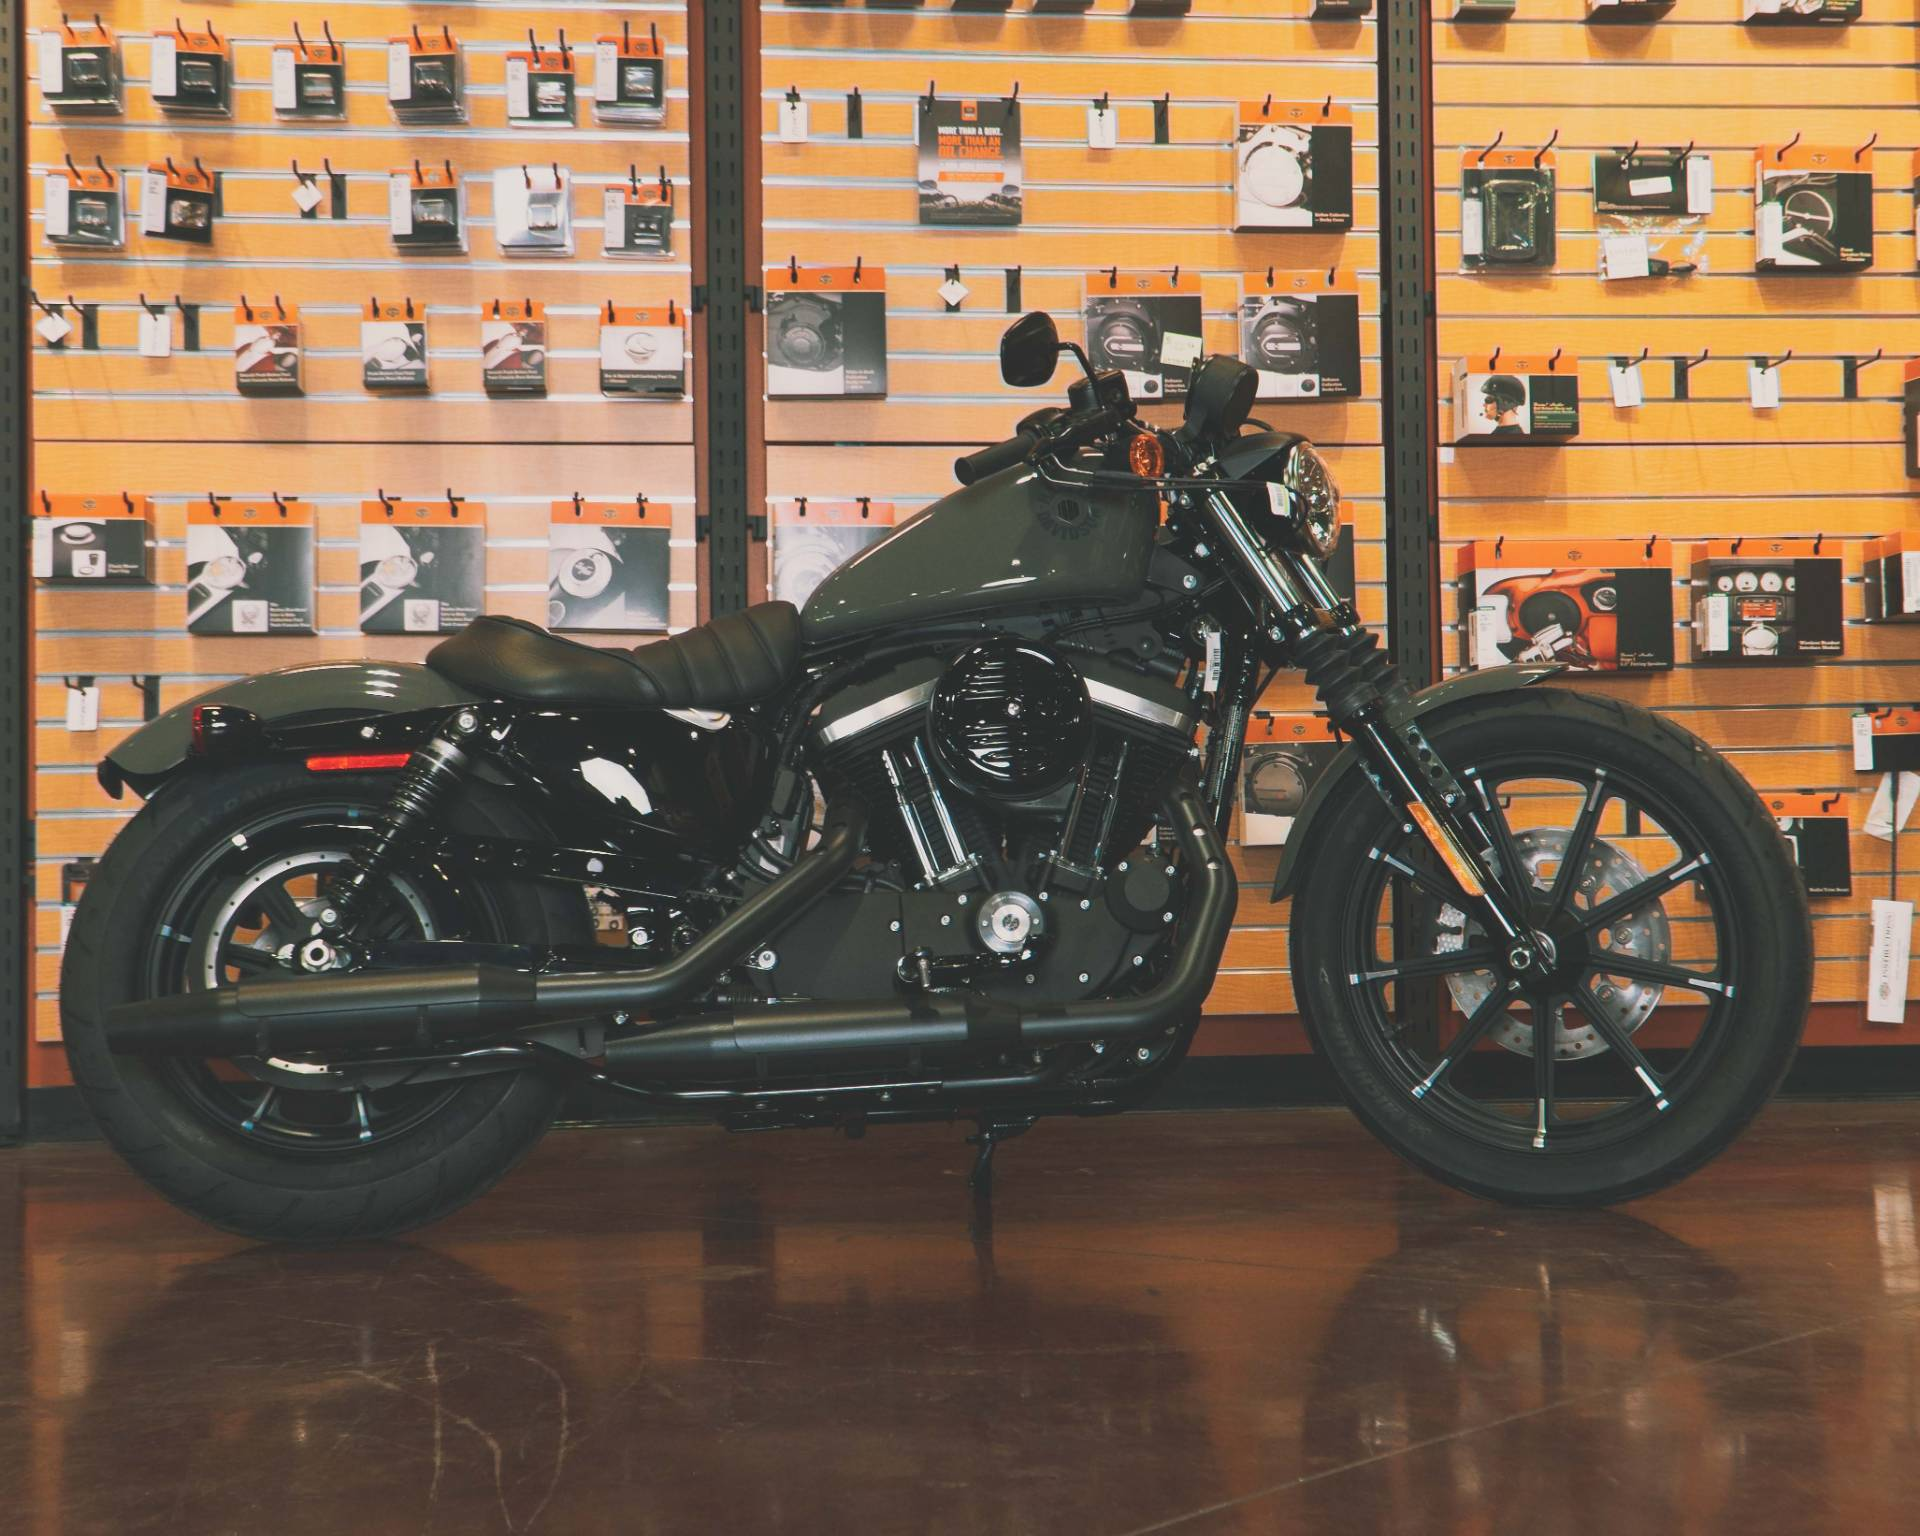 2021 Harley-Davidson XL883N in Mount Vernon, Illinois - Photo 1